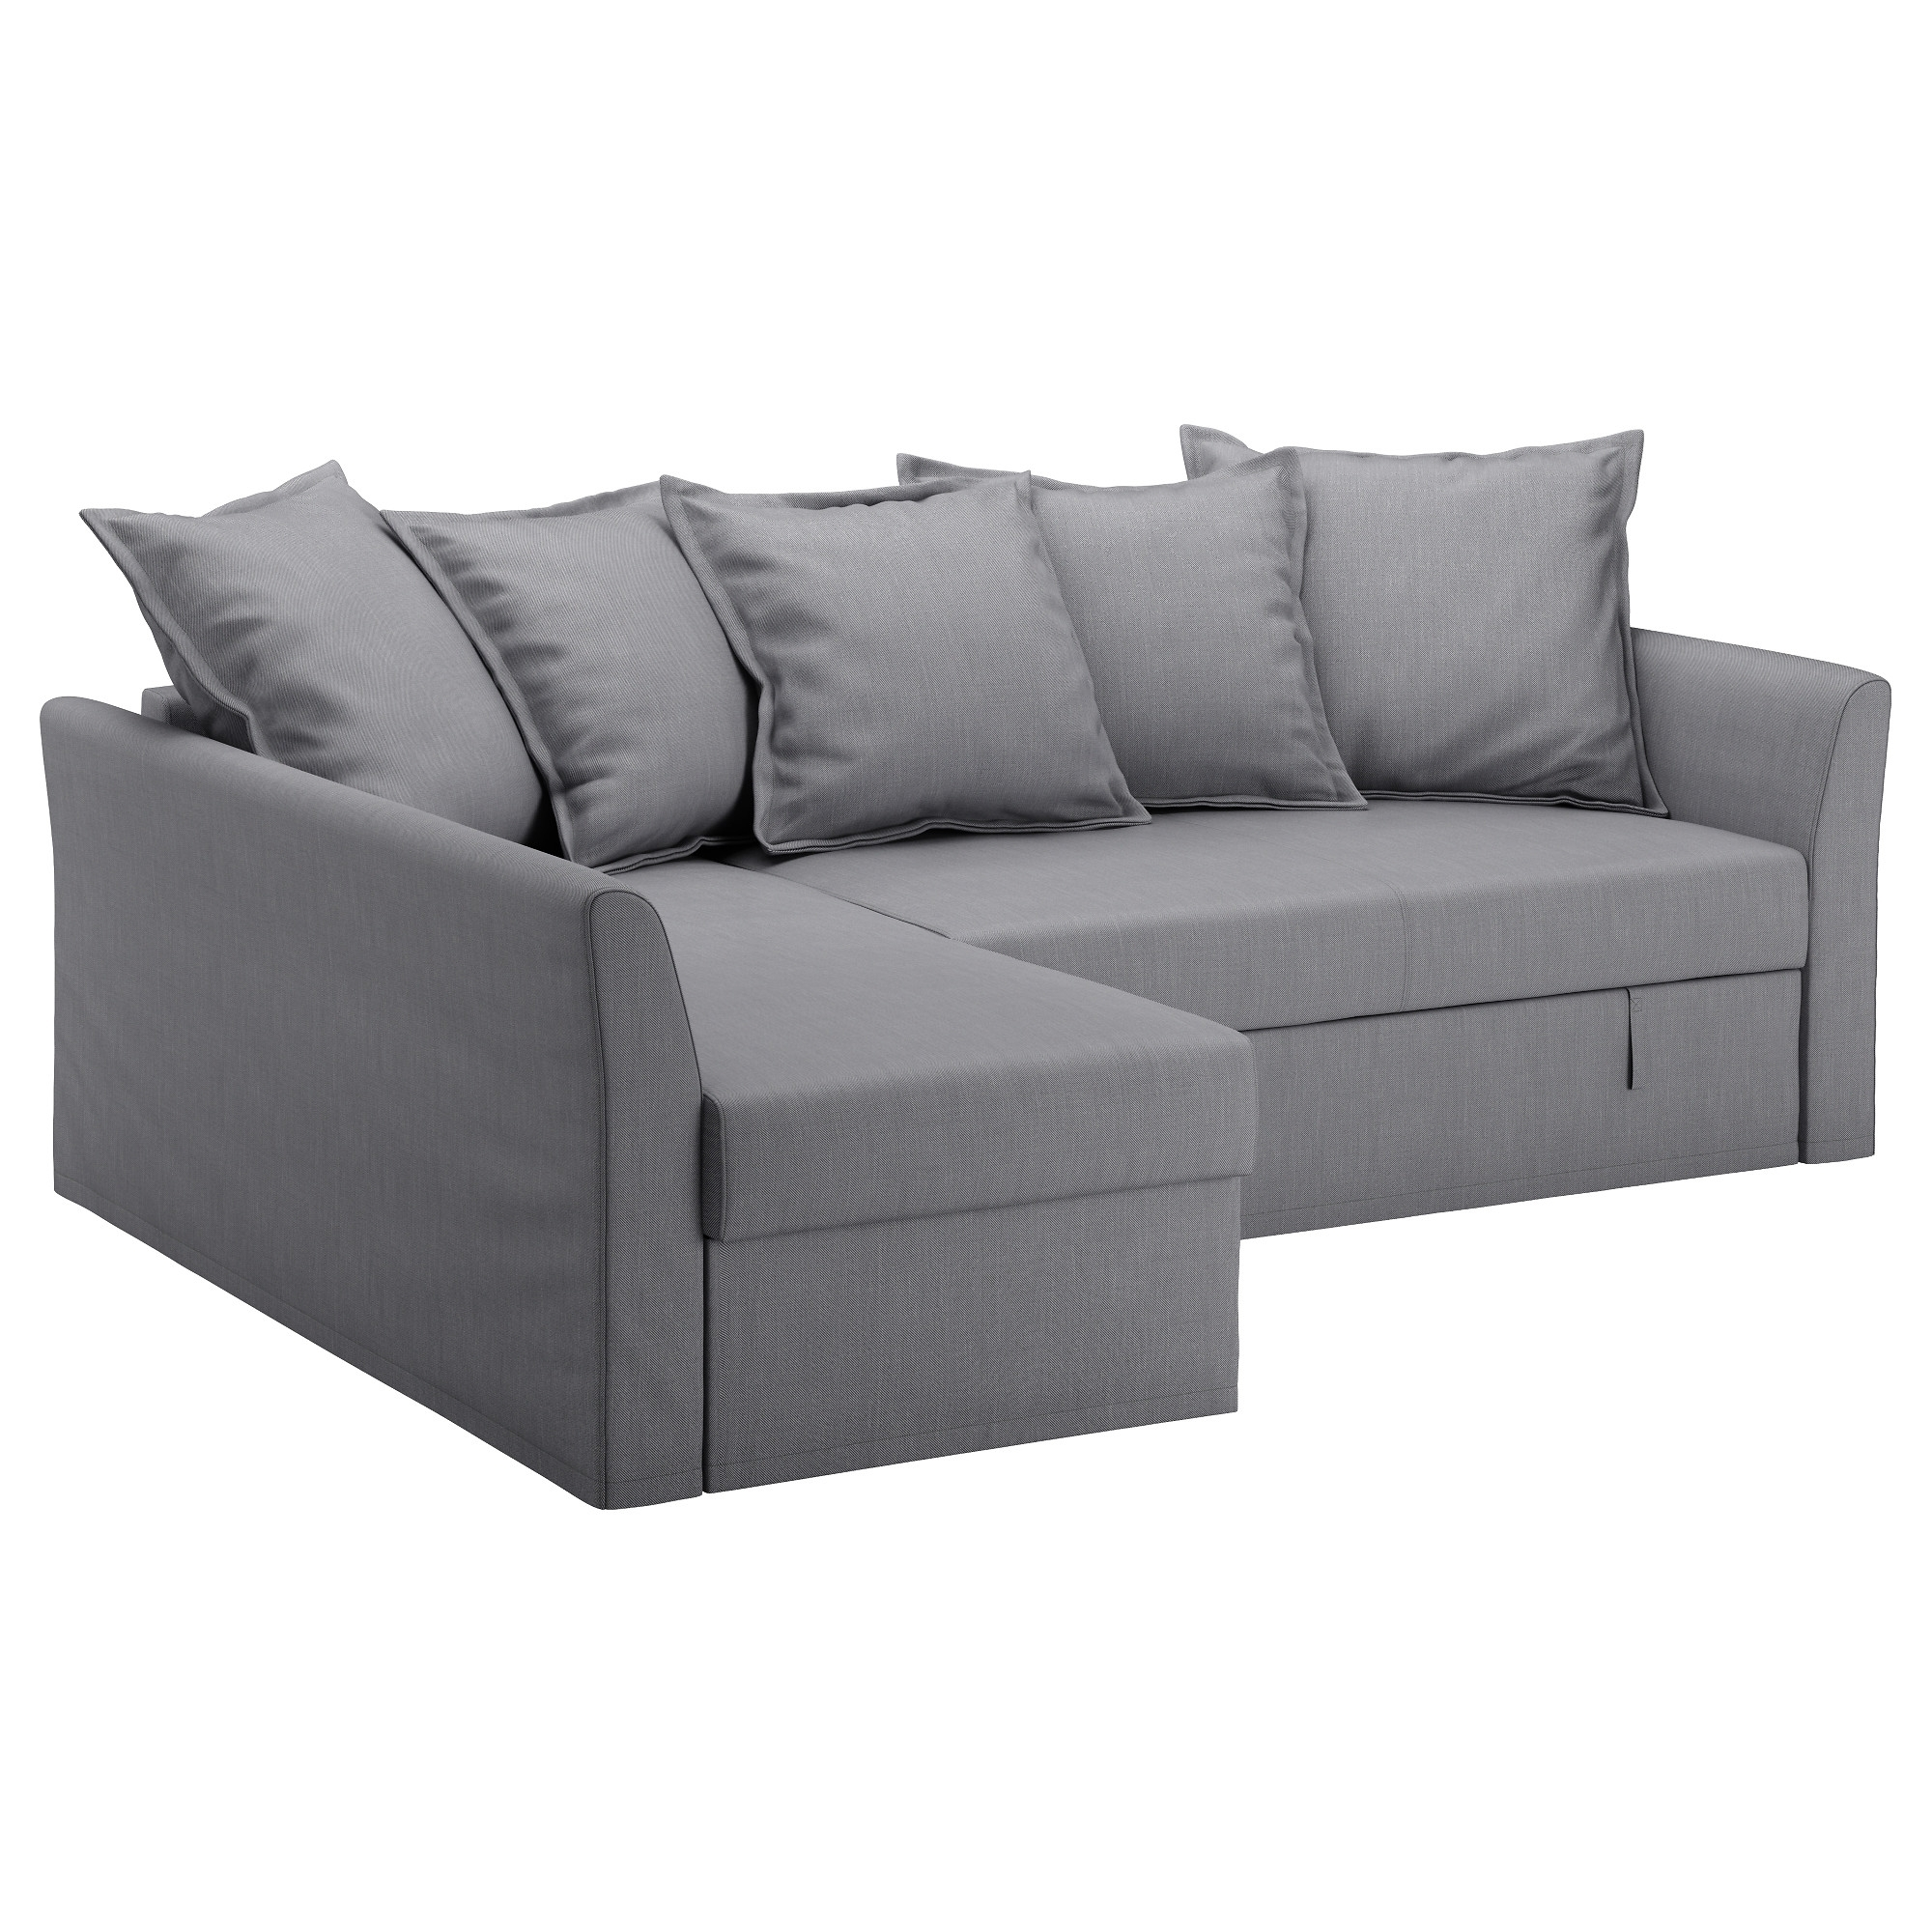 Chaise Lounges With Regard To Well Liked Chaise Lounge Sofa Beds (View 14 of 15)